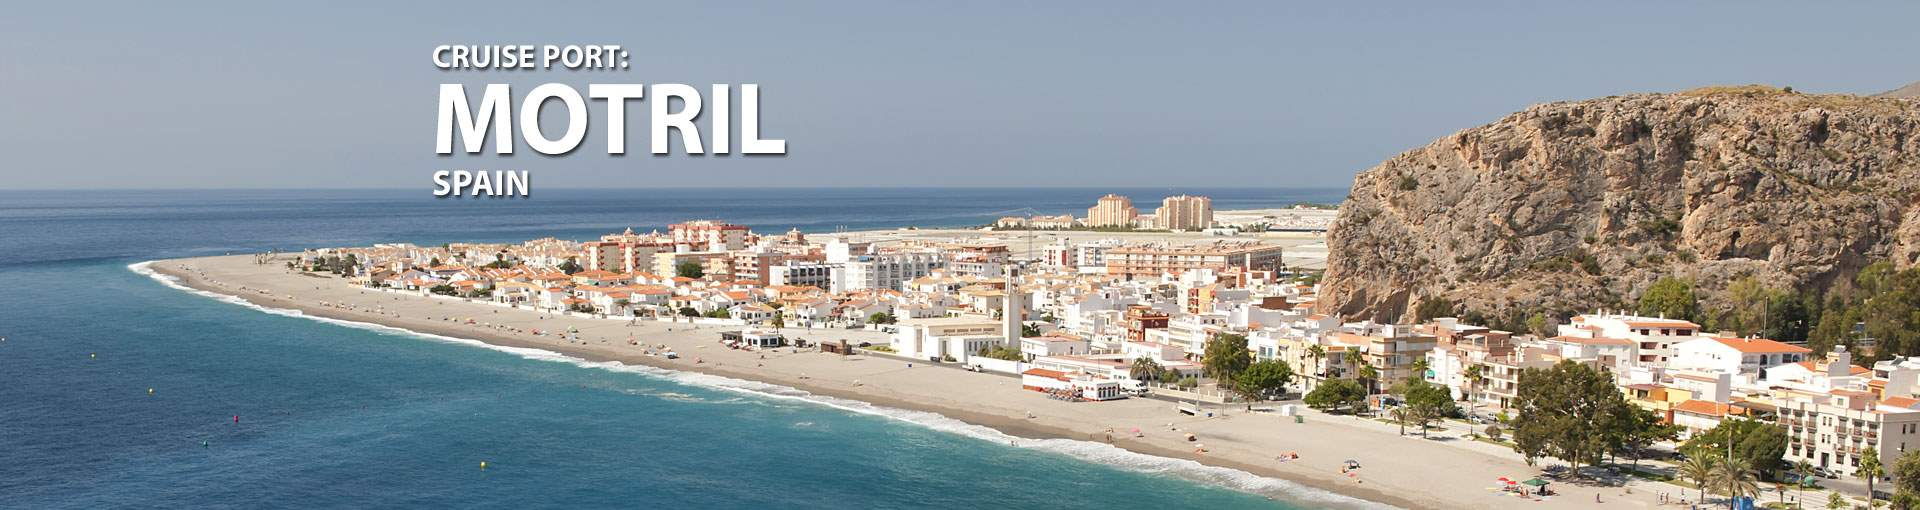 Cruises to Motril, Spain